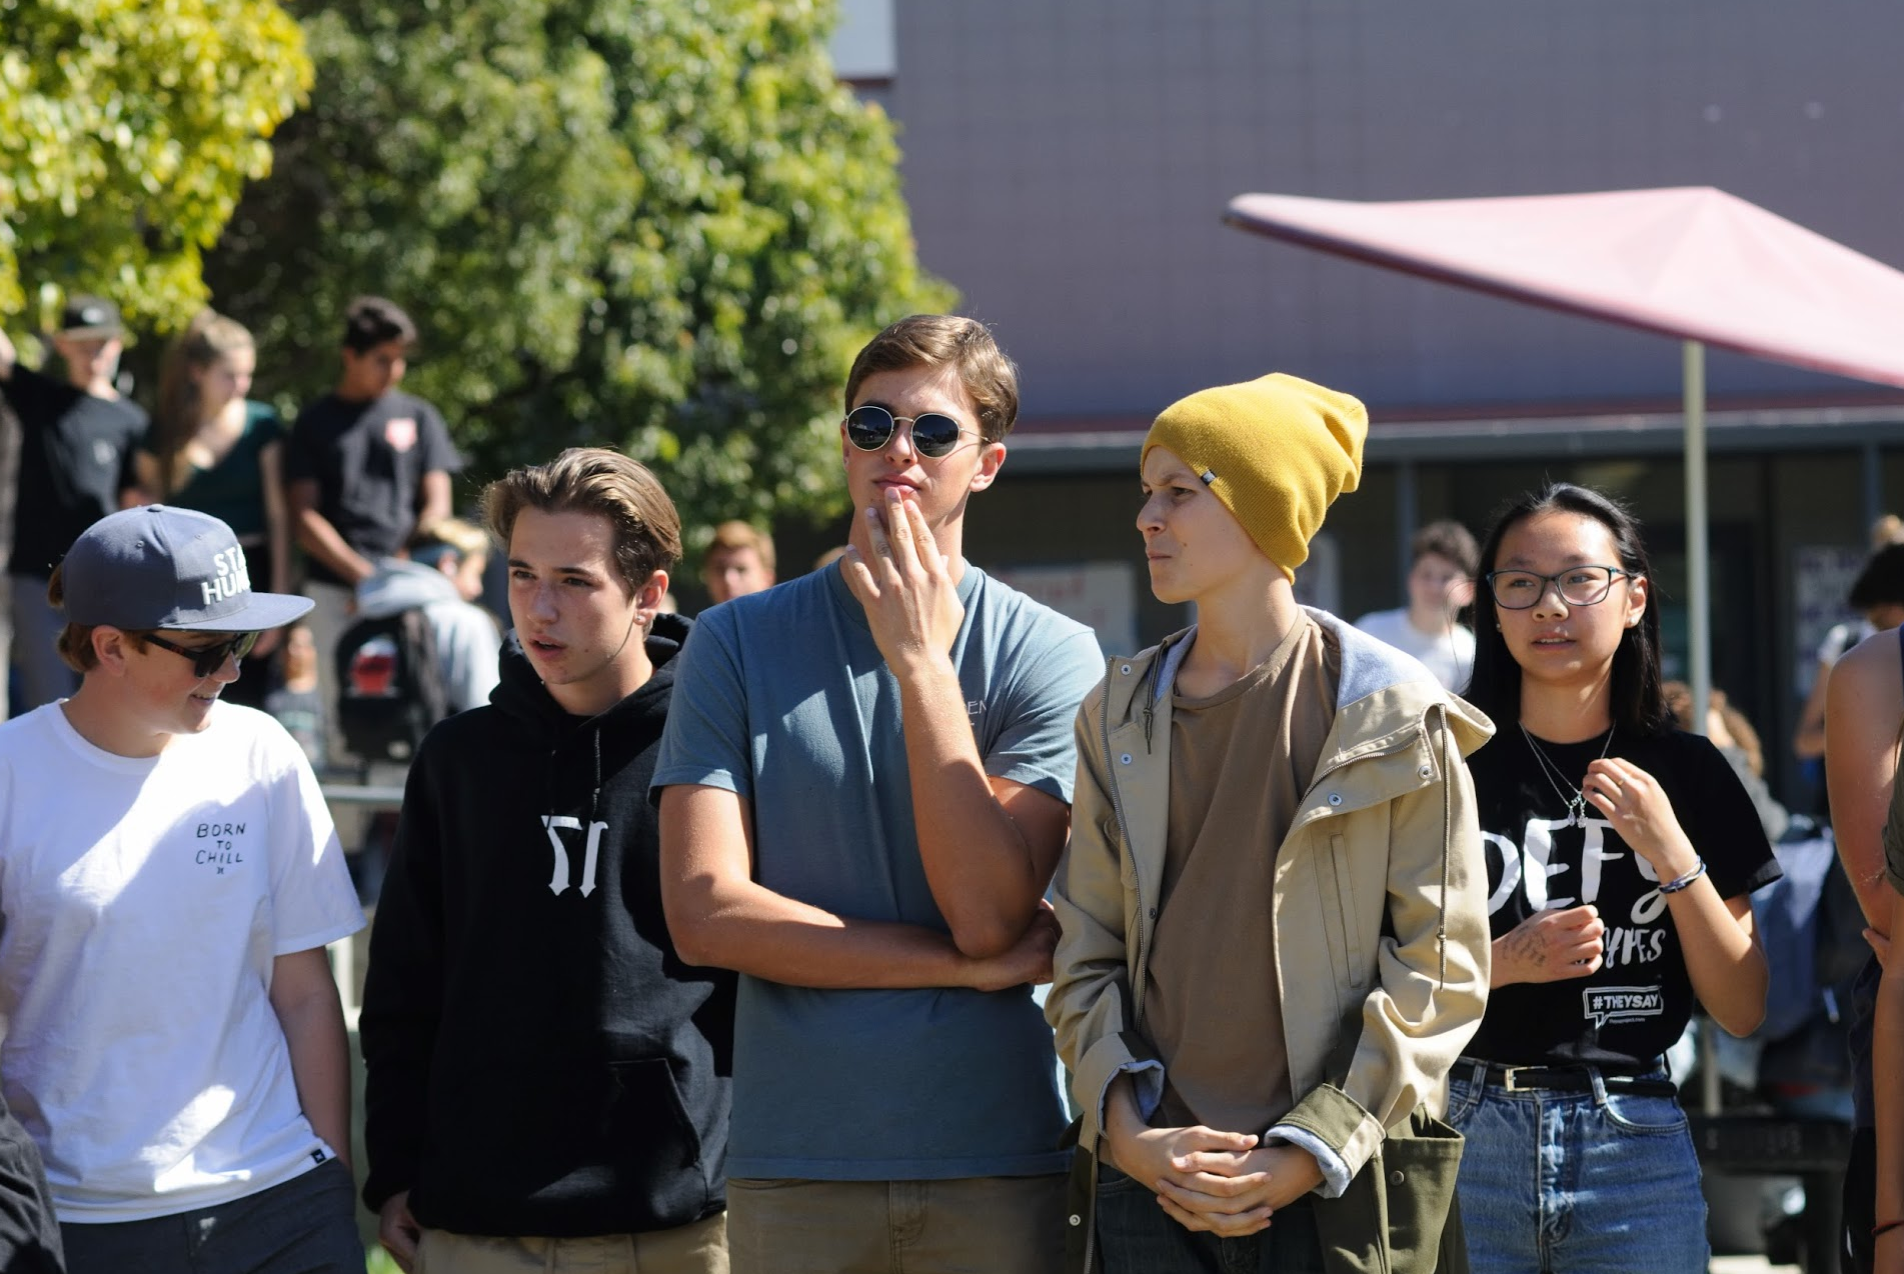 Students listen intently to what WE club has to say. Credit: Muriel Rowley / The Foothill Dragon Press